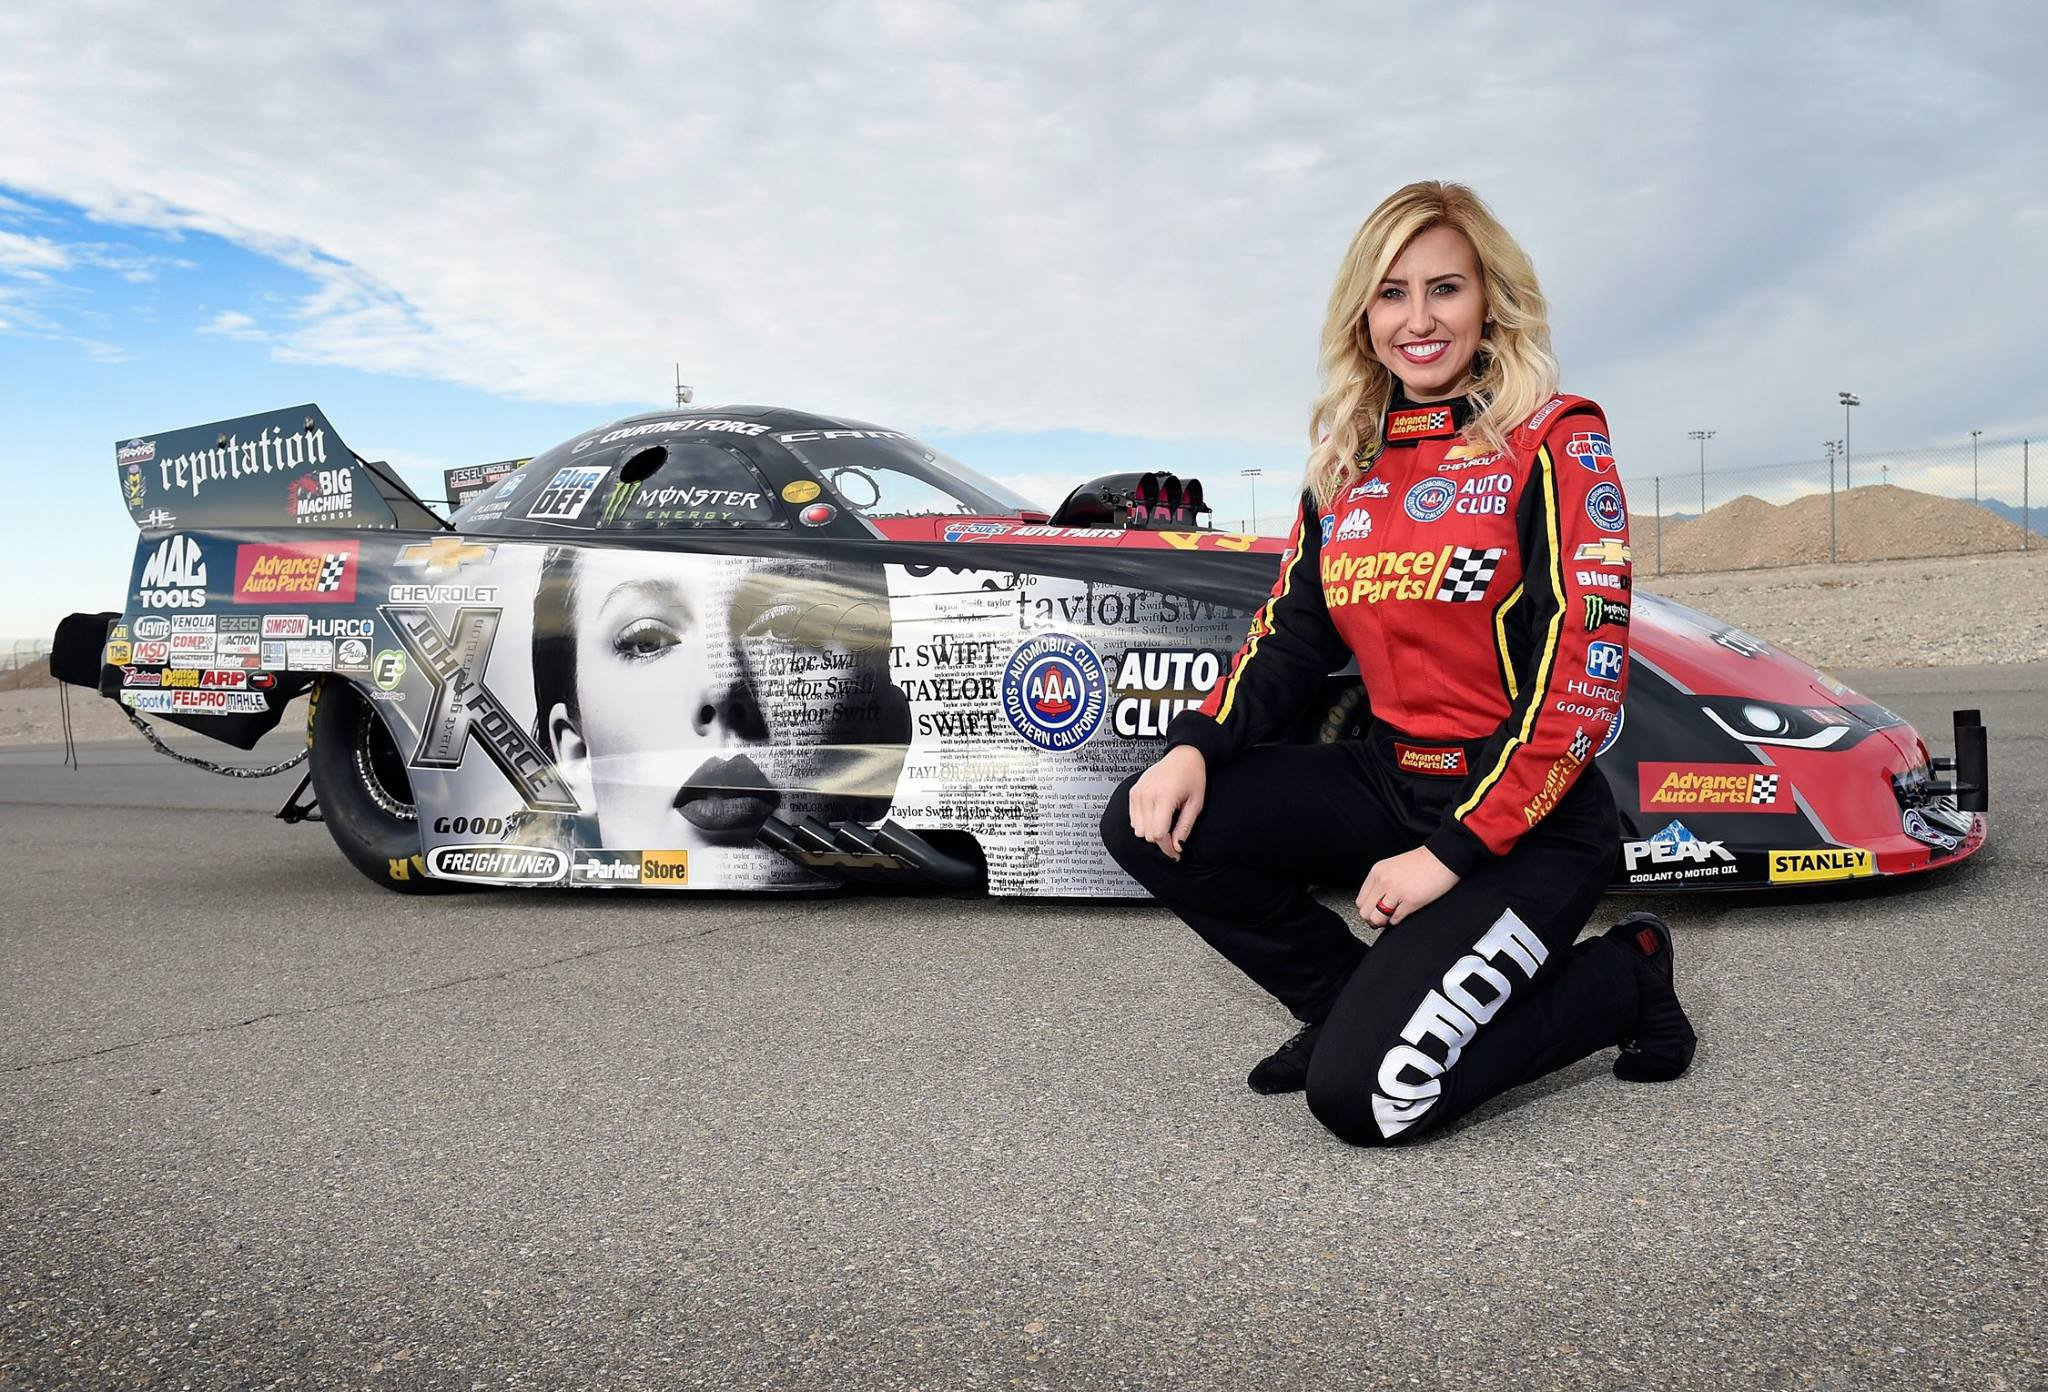 Taylor Swift Drag Racing car - Courtney Force NHRA